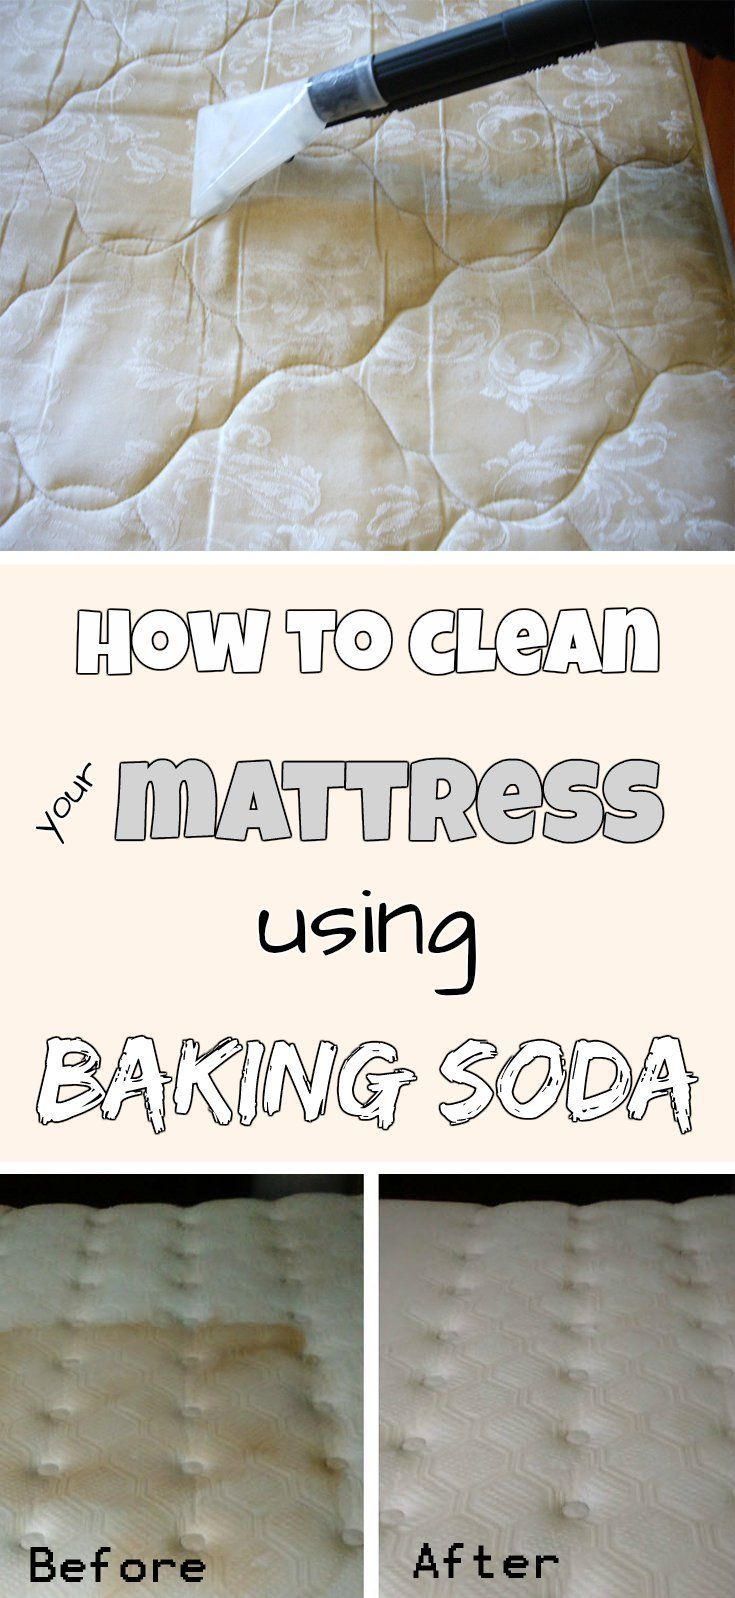 How to clean your mattress using baking soda  Mattress cleaning